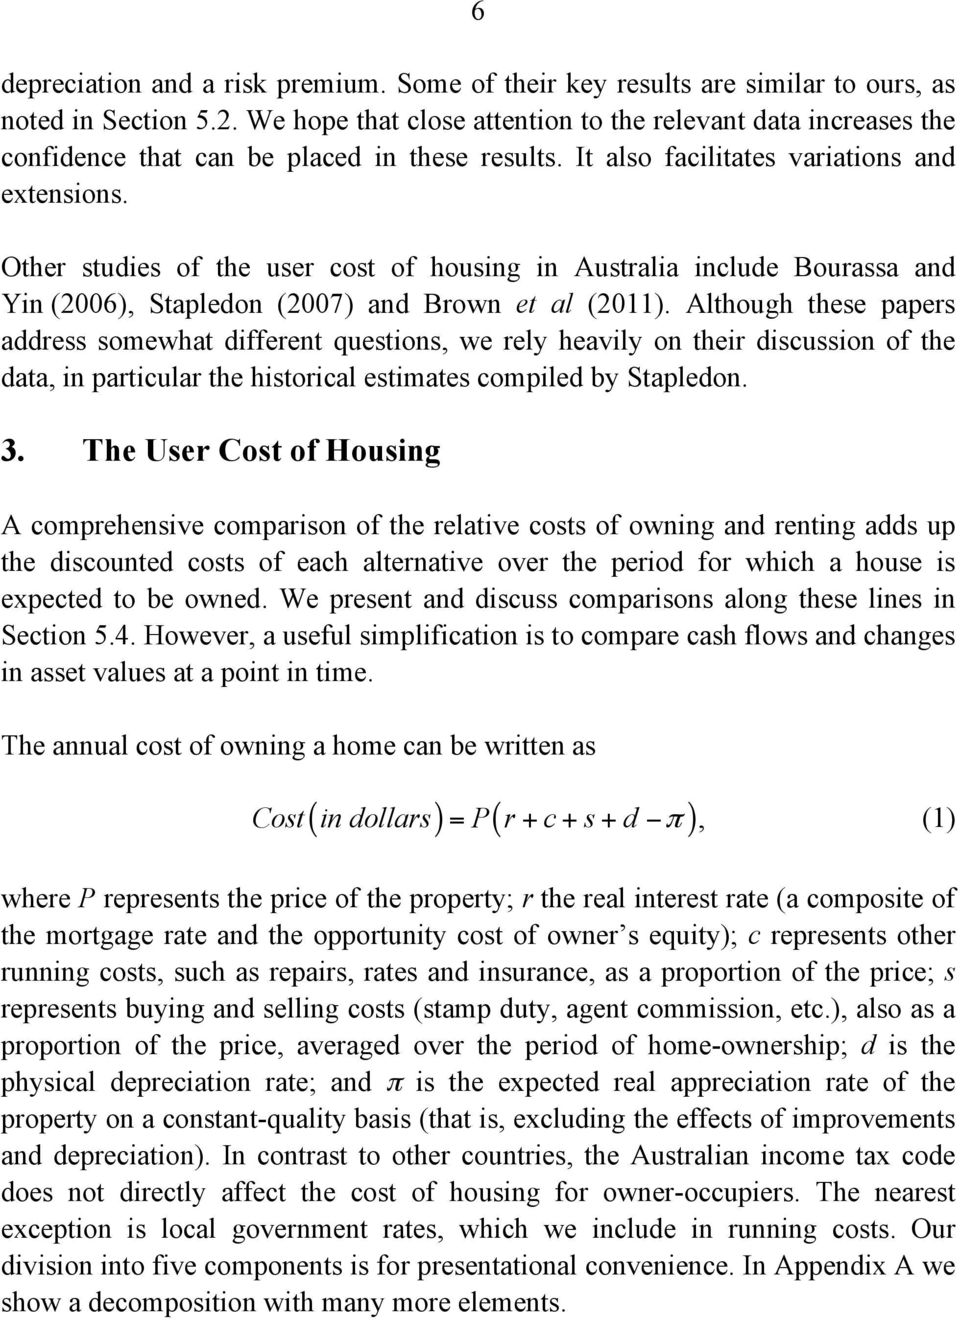 Other studies of the user cost of housing in Australia include Bourassa and Yin (2006), Stapledon (2007) and Brown et al (2011).